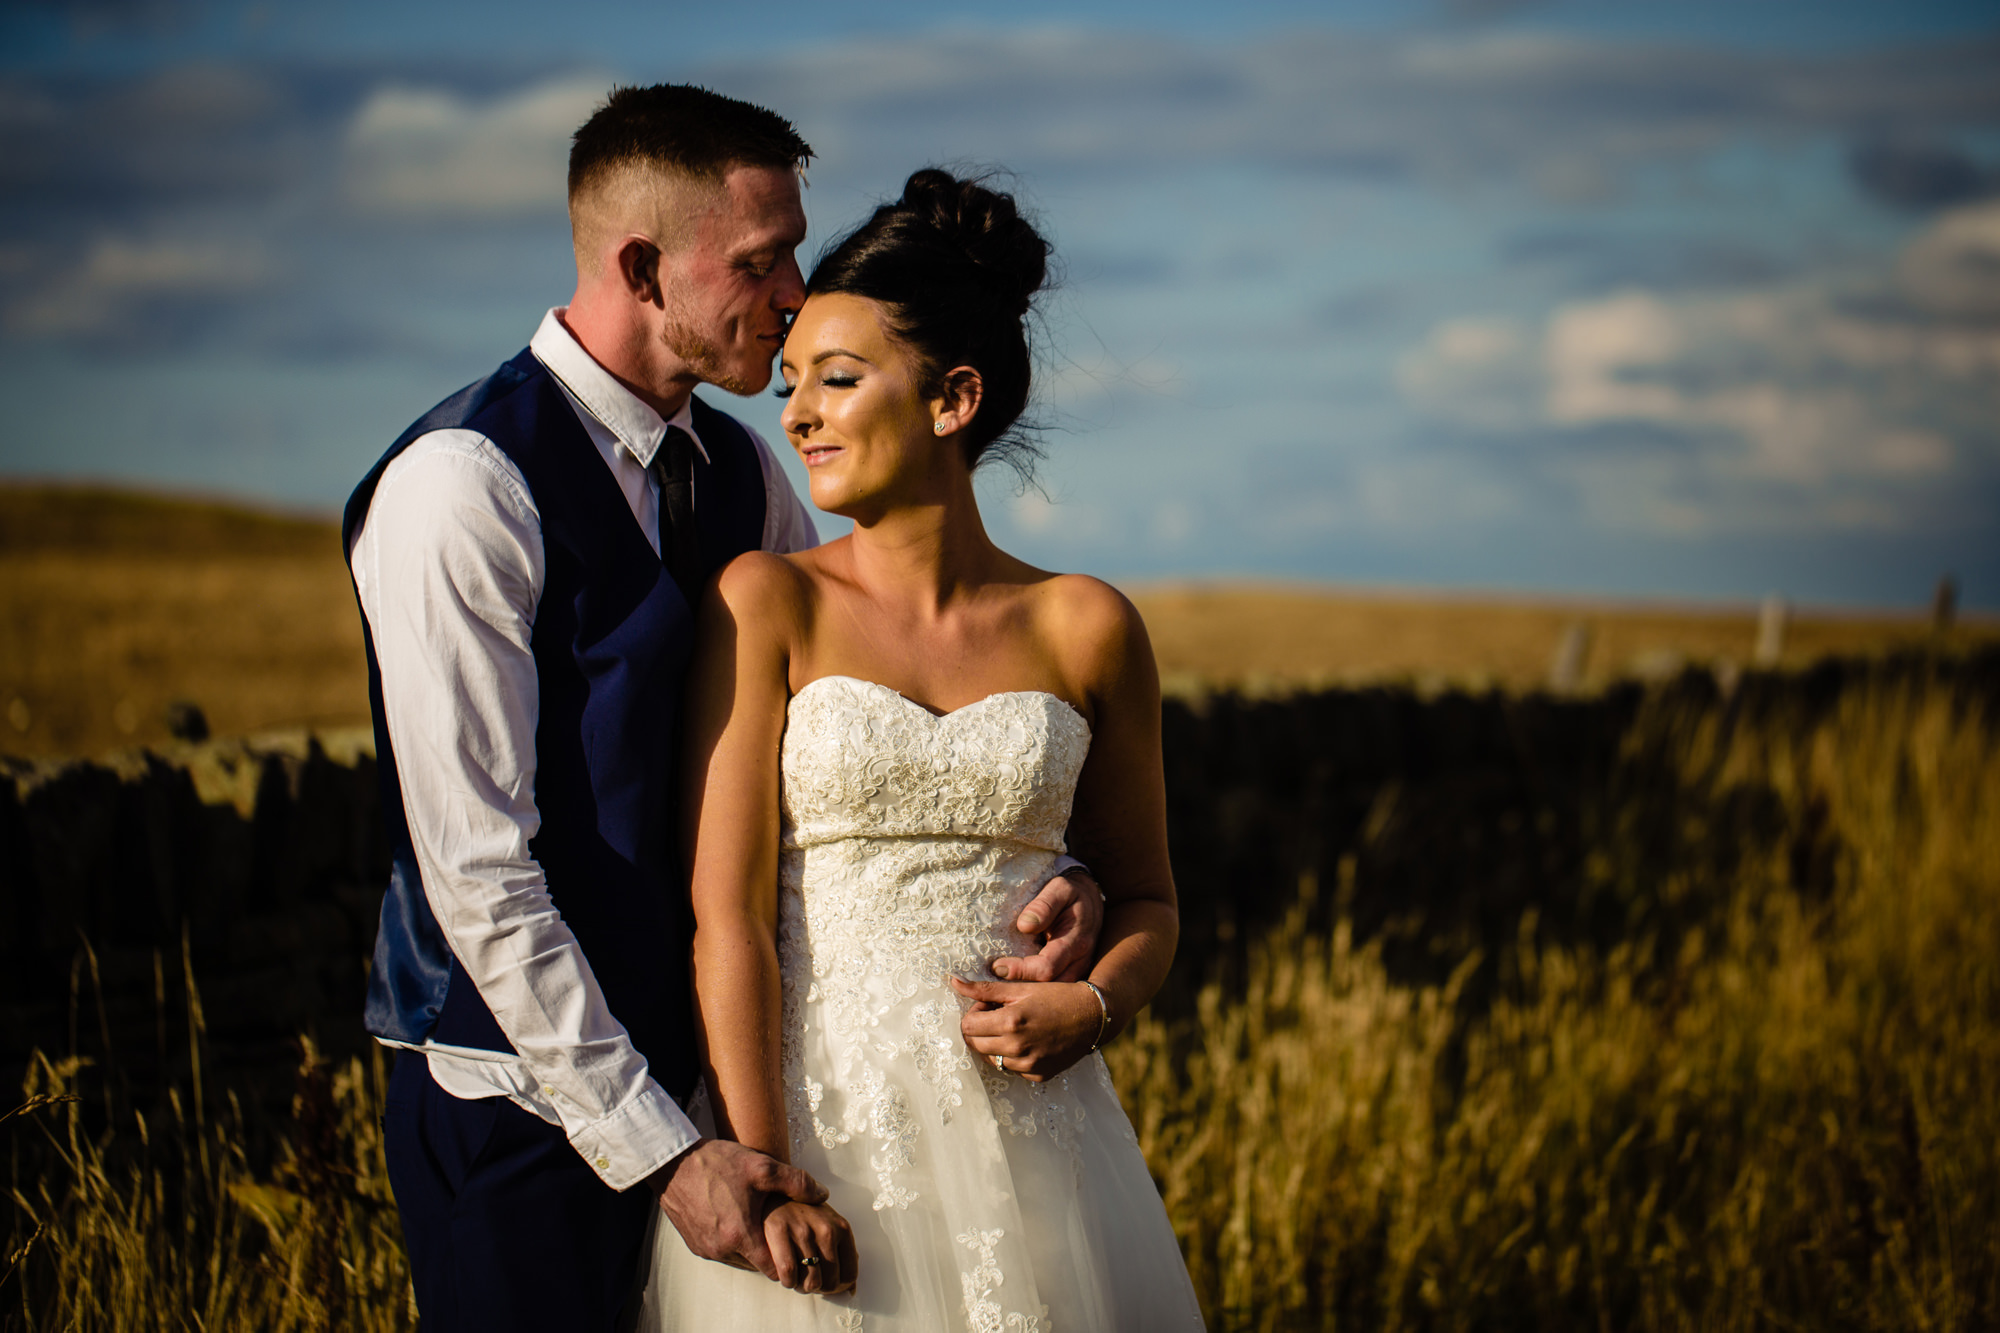 a wedding portrait. huntsman inn wedding photography by emma and rich.